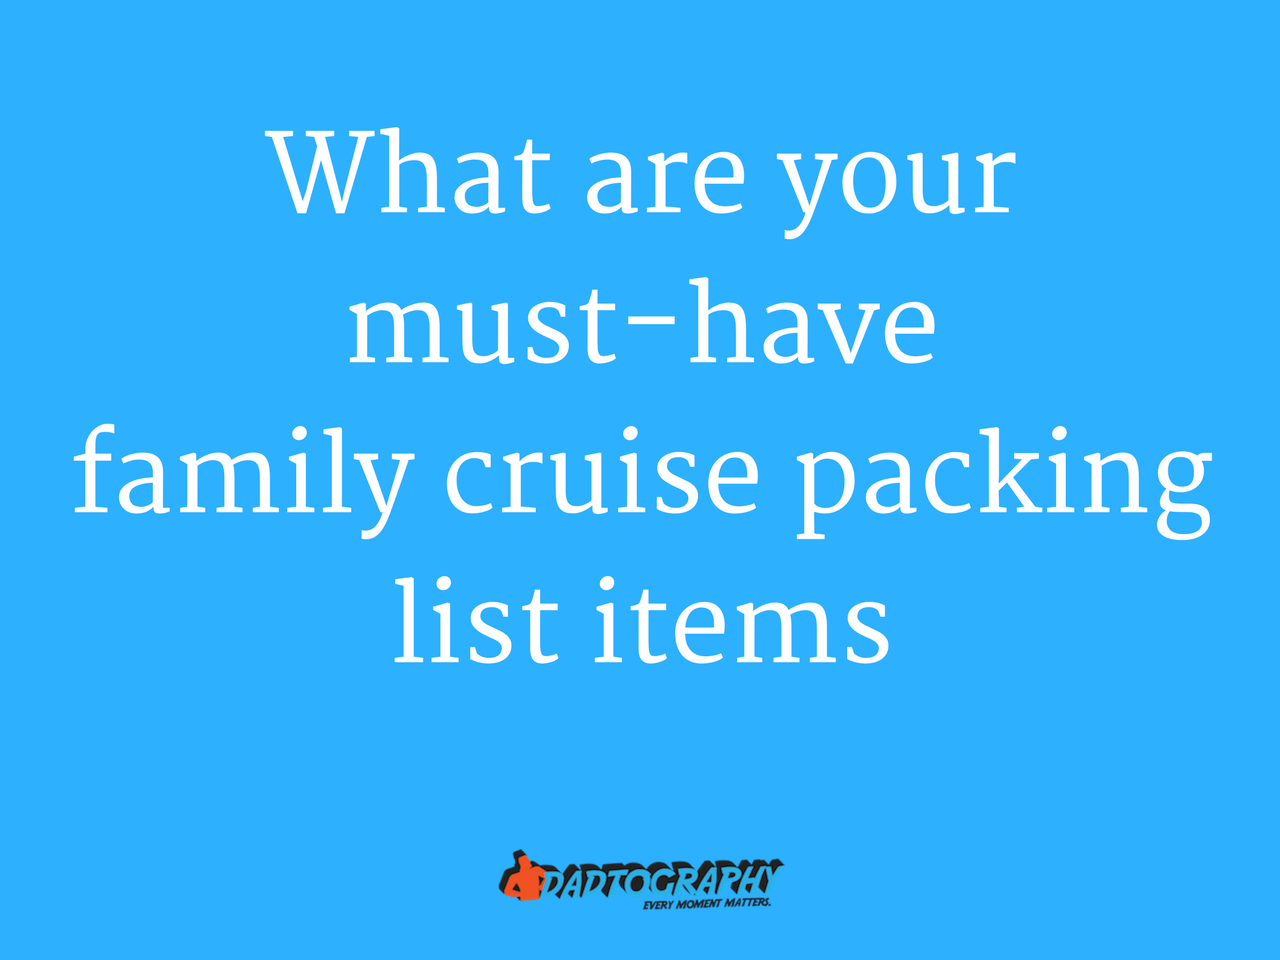 What are your must-have family cruise packing list items?